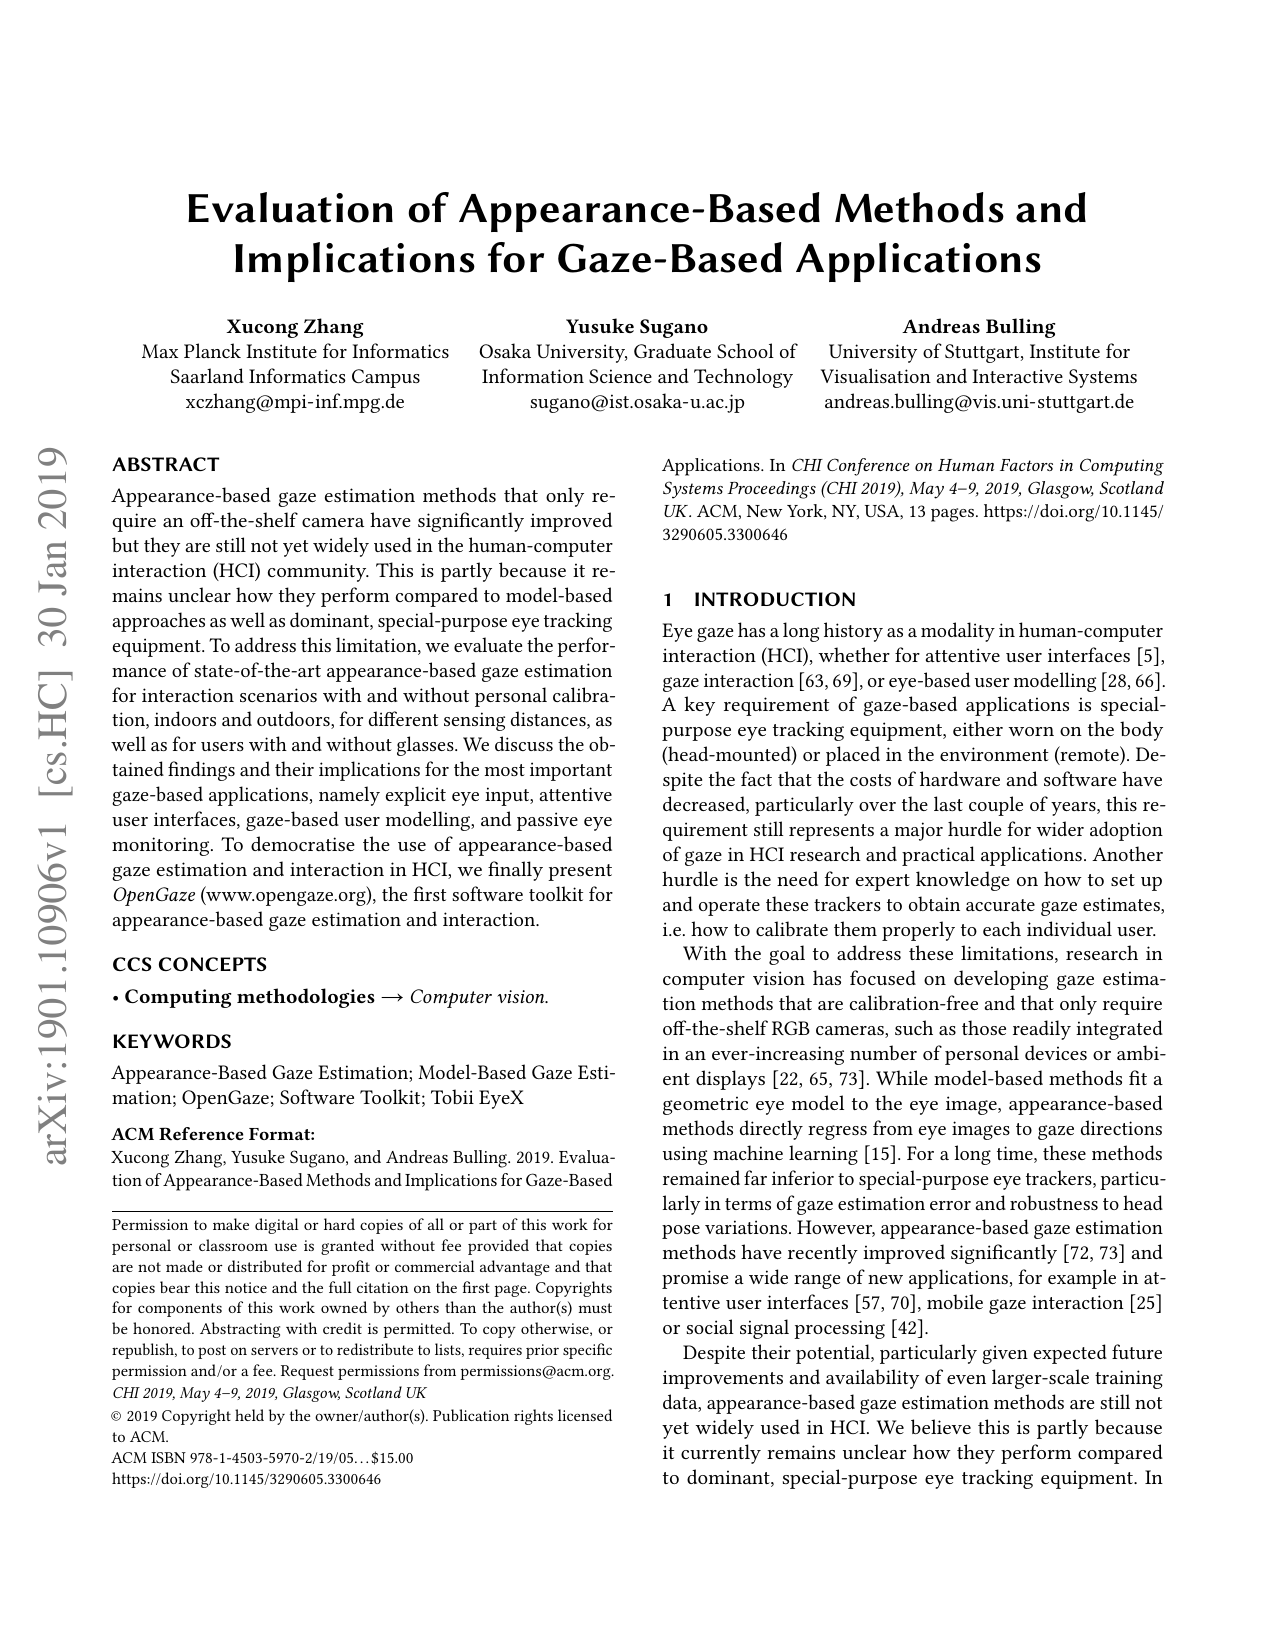 Evaluation of Appearance-Based Methods and Implications for Gaze-Based Applications